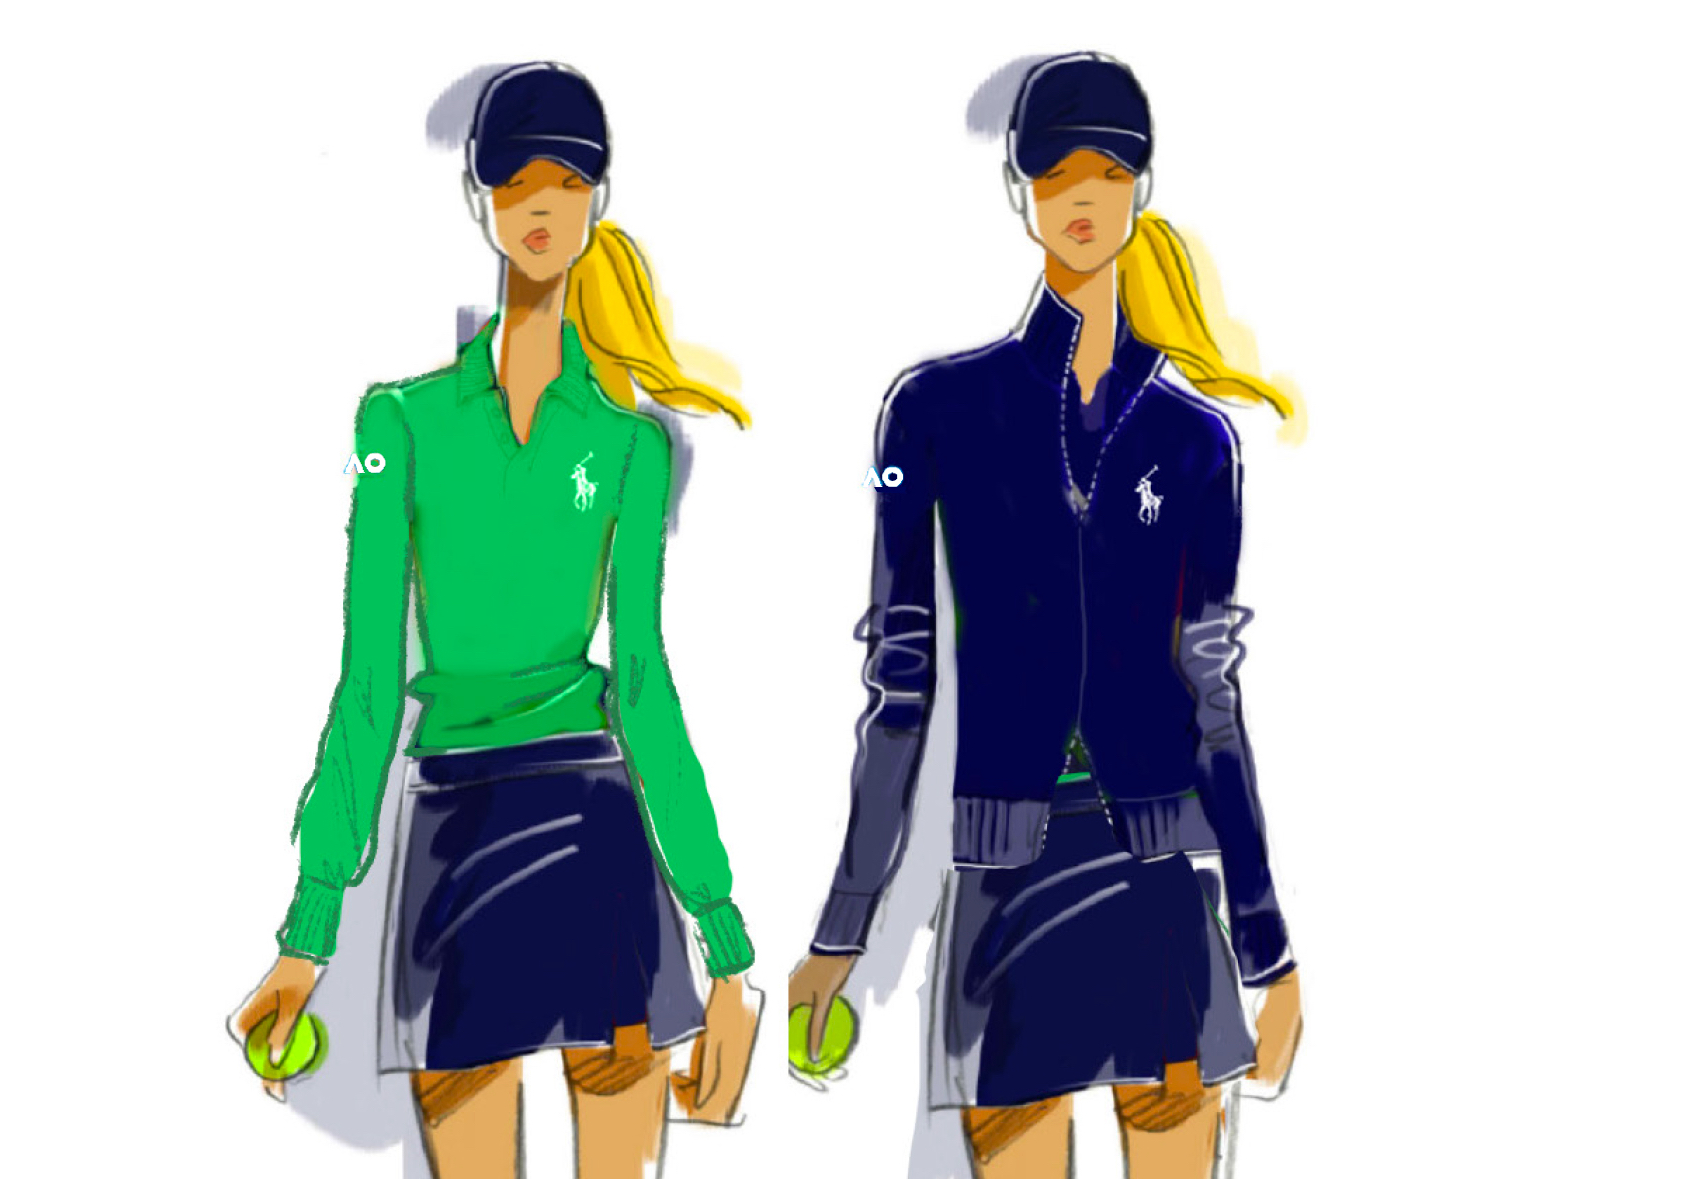 The new kit for on-court ball girls at Melbourne Park, part of Ralph Lauren's uniforms for the Australian Open tennis tournament, as its new official outfitter.